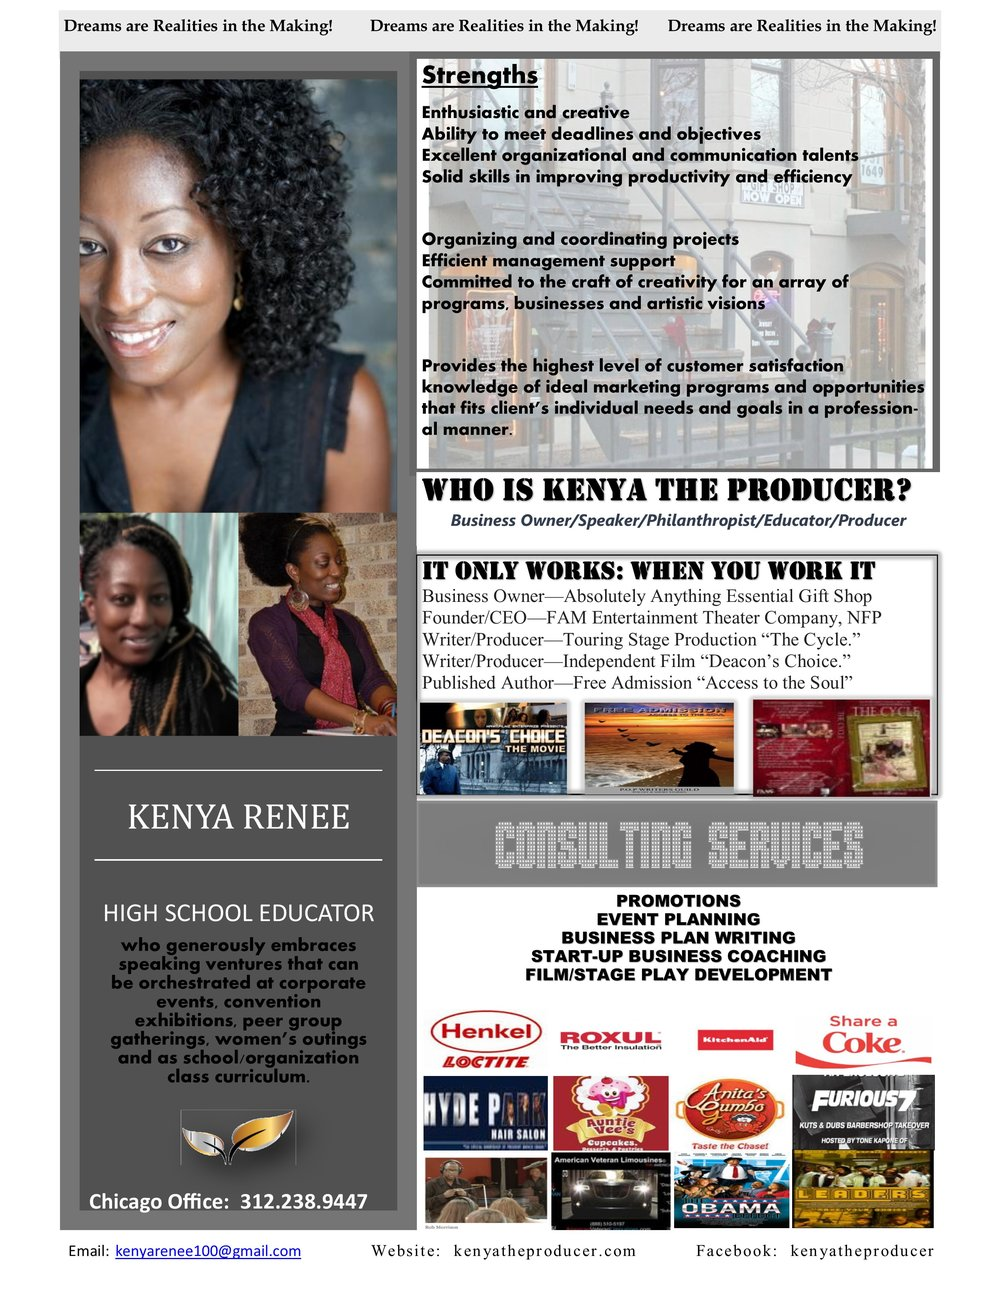 Hire Kenya Renee